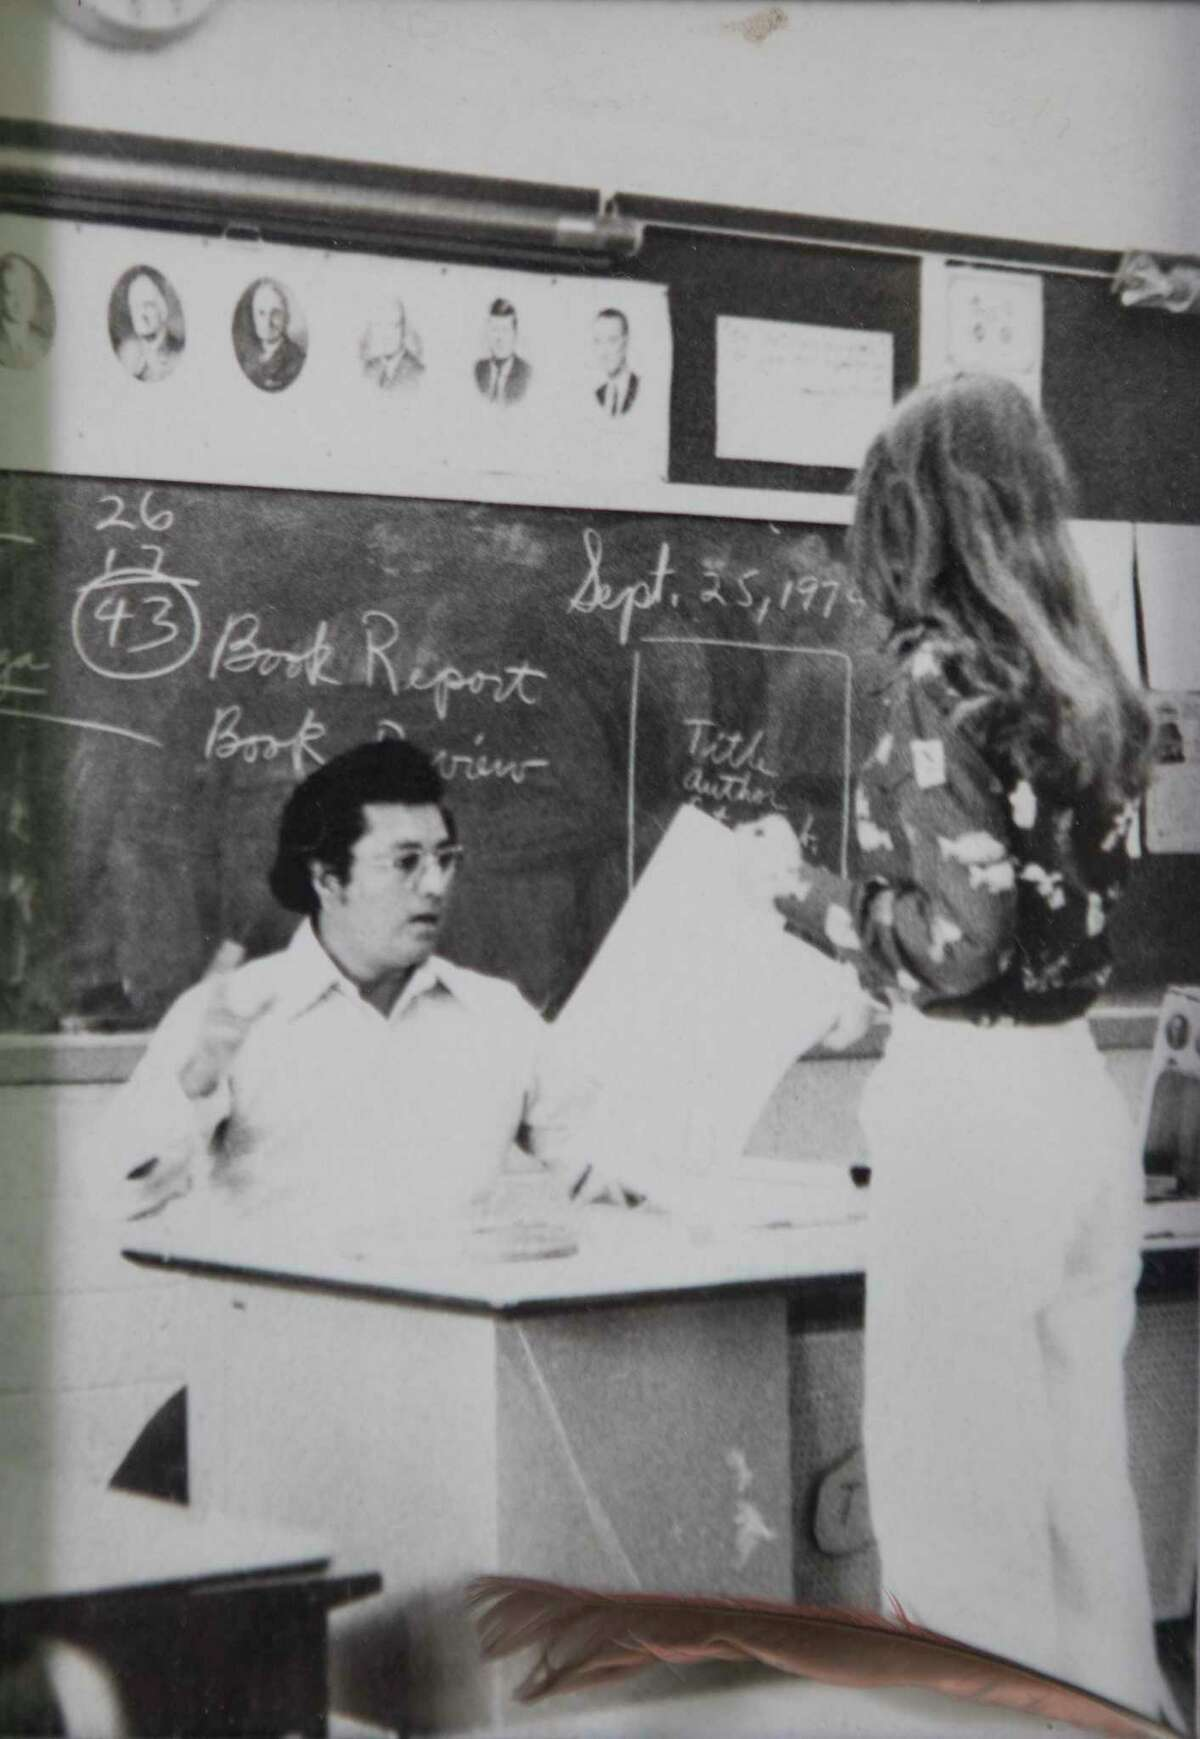 Sunny Astorga's father, Ysidro Astorga, Jr., is shown in a 1979 family photo while teaching at Dulles High School. Astorga, Jr., died in 2008 at age 68 of kidney and liver failure. Sunny is the youngest of five and was very close with her dad.